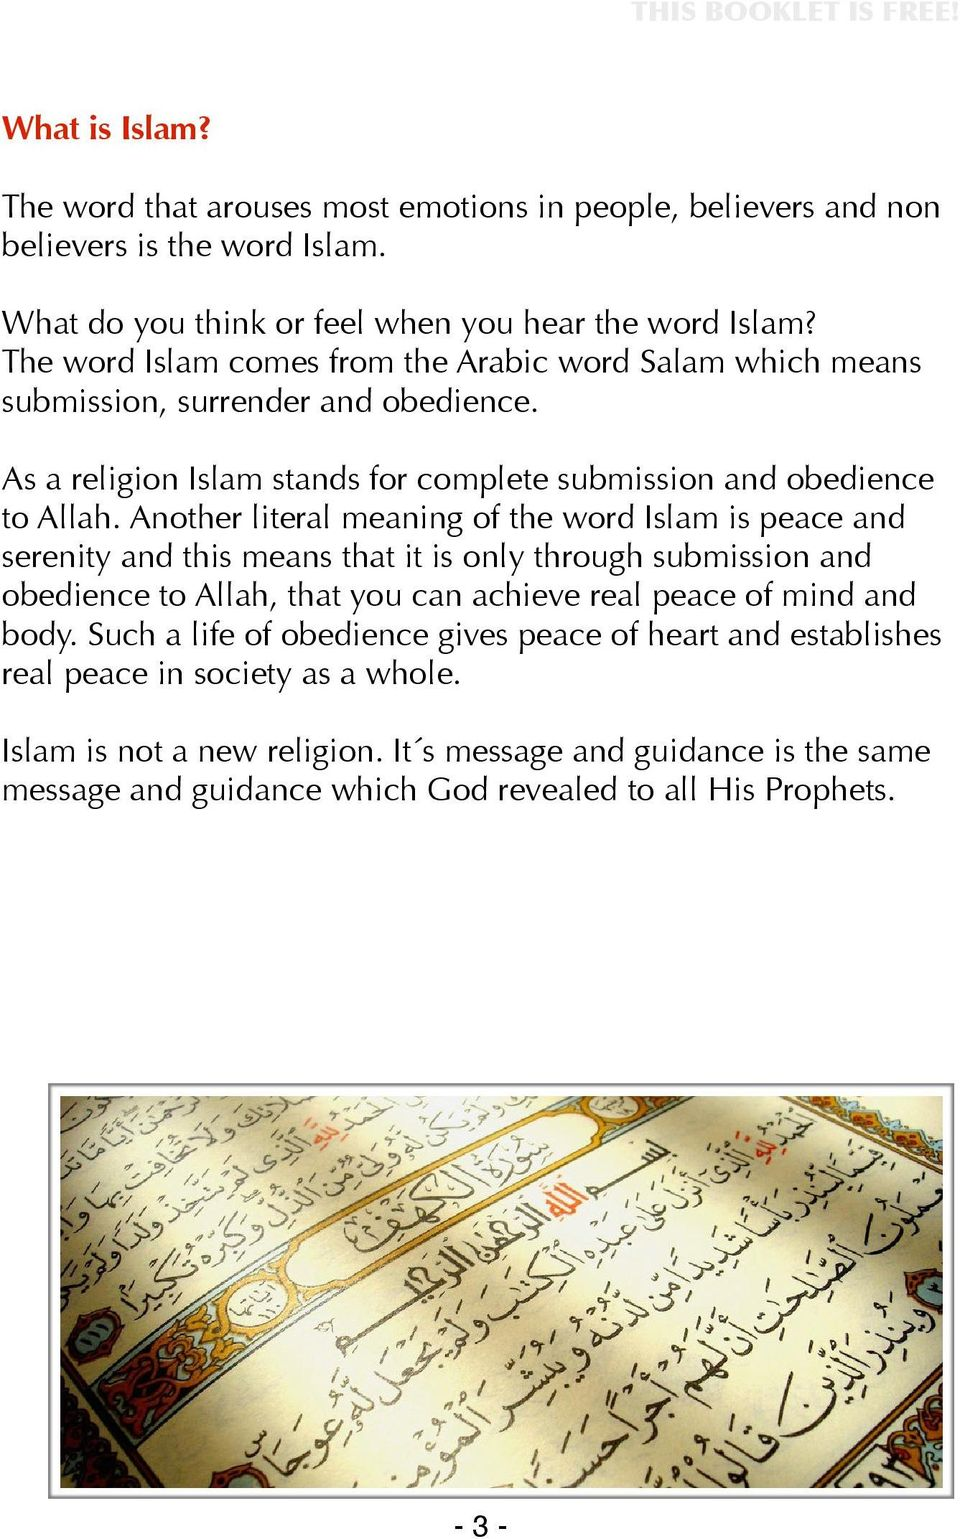 What is Islam? Learn to understand Islam! Project manager